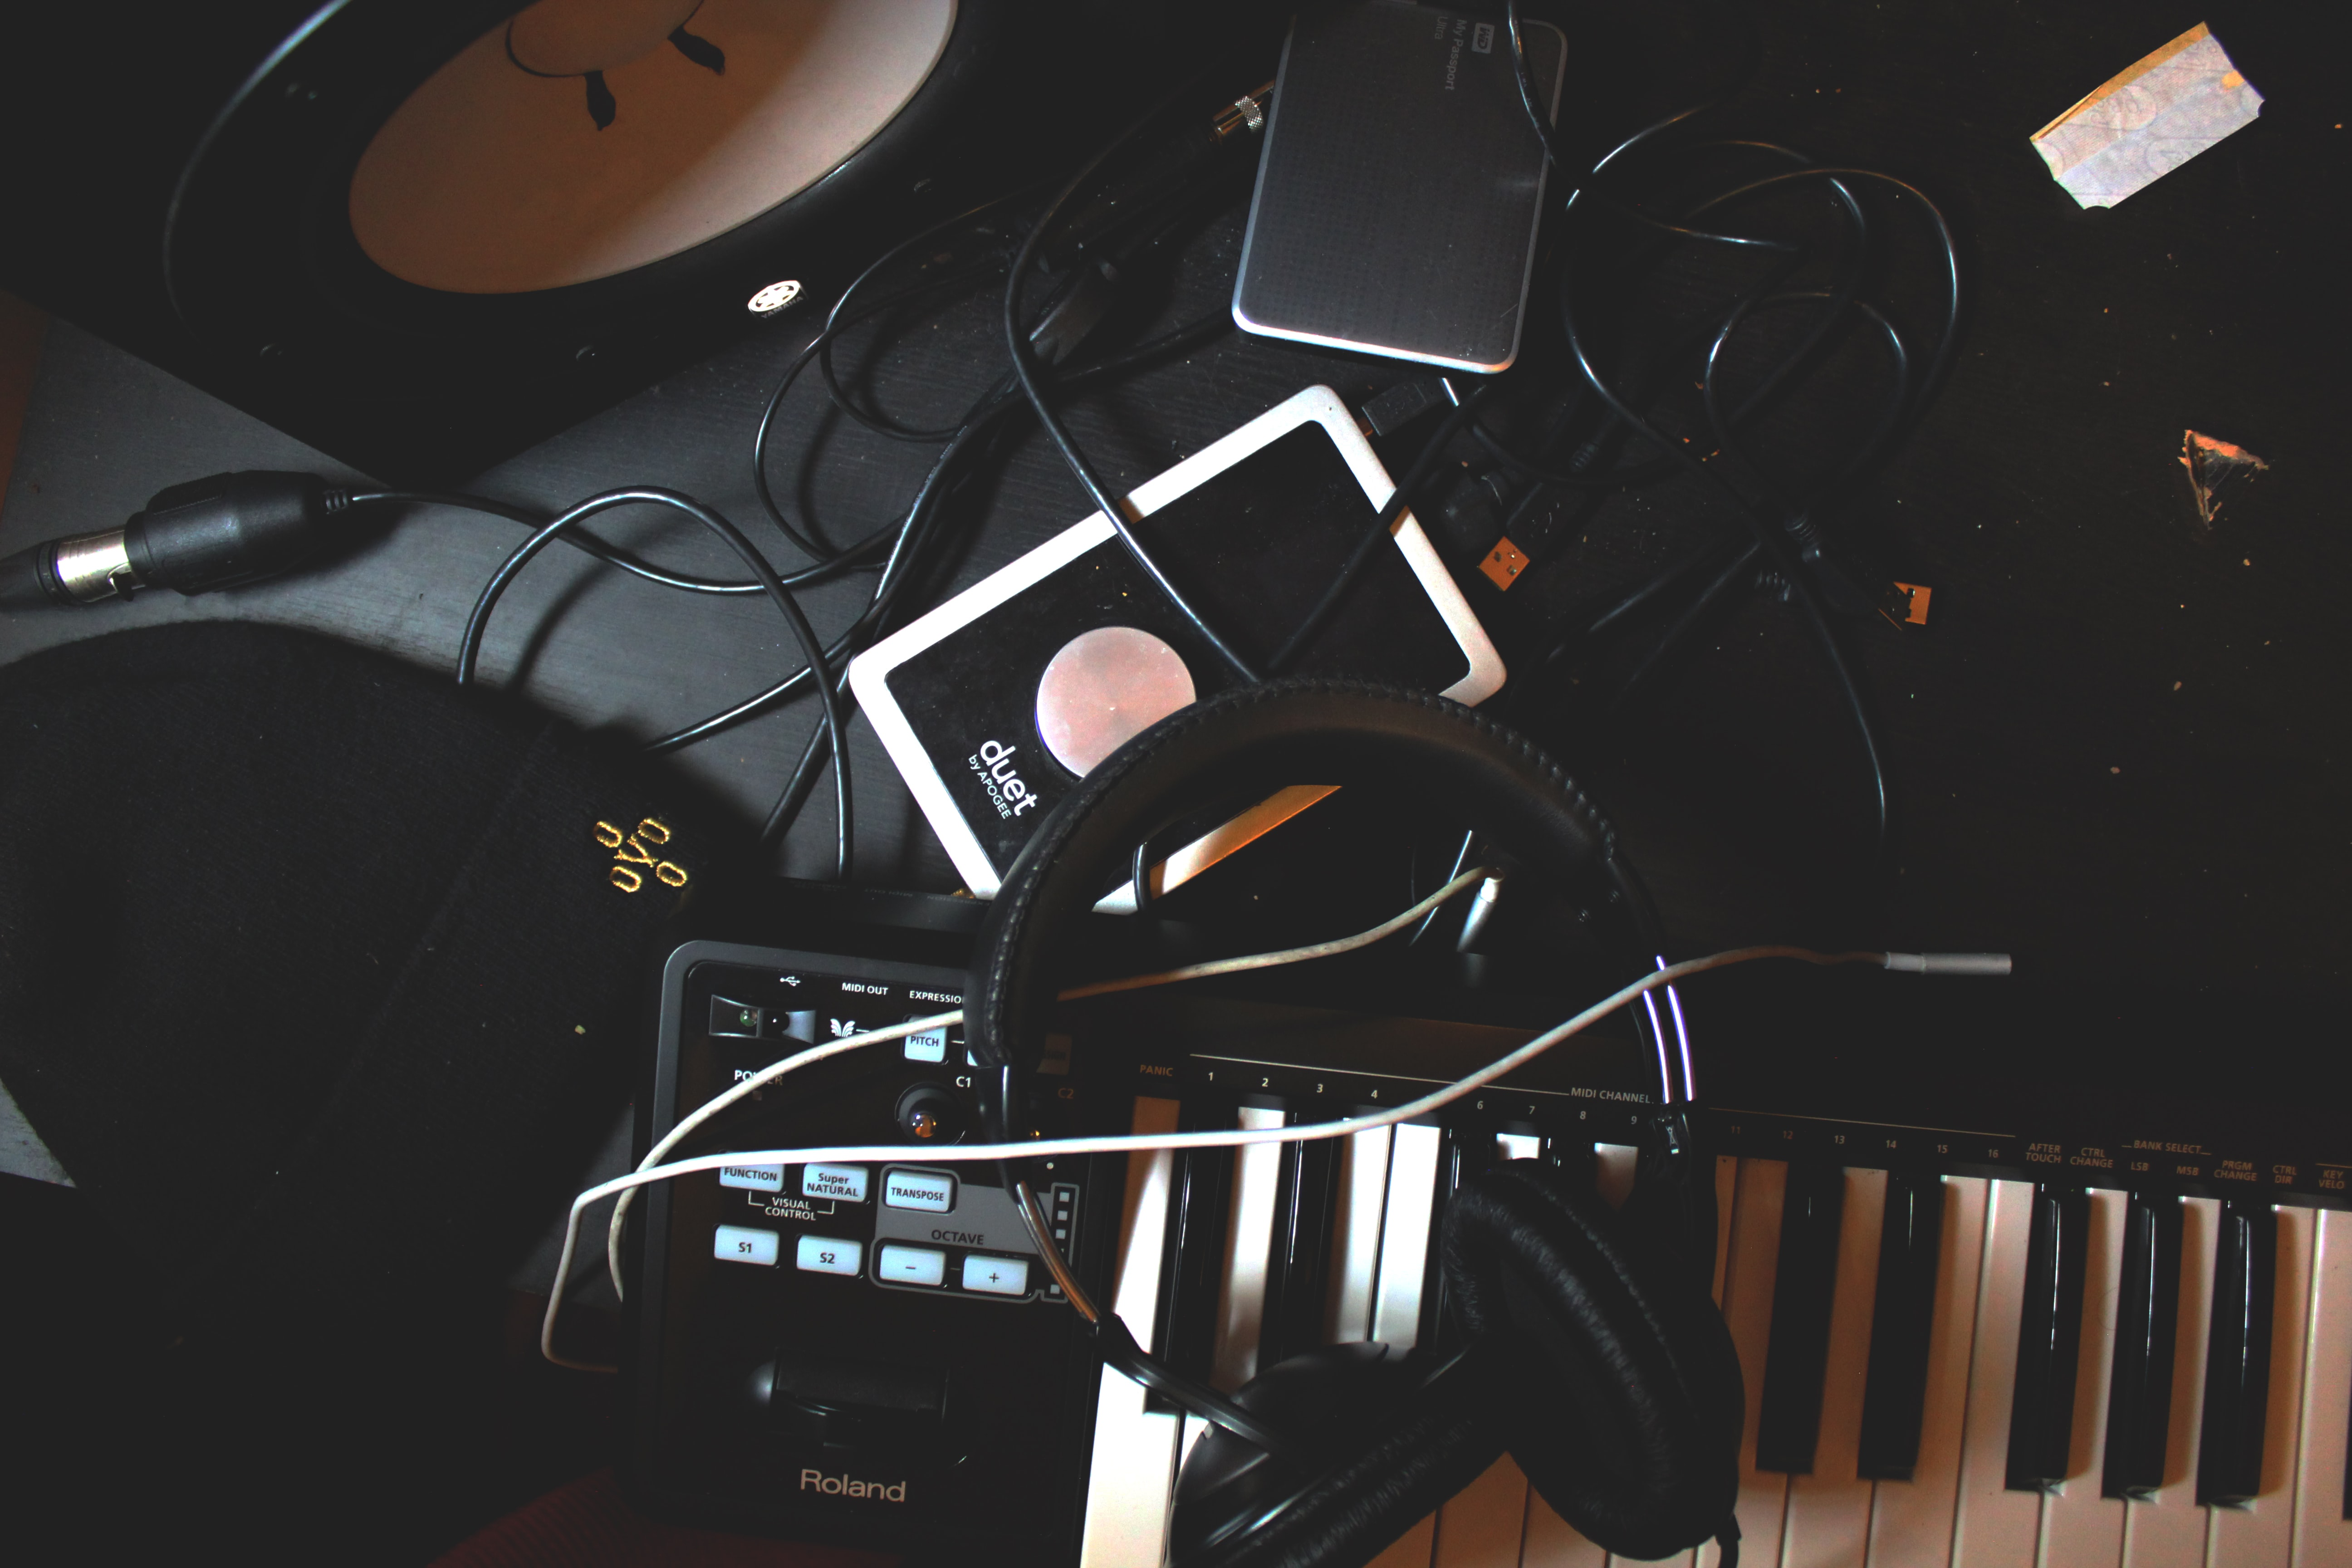 An overhead shot of headphones on a keyboard and a tangle of wires